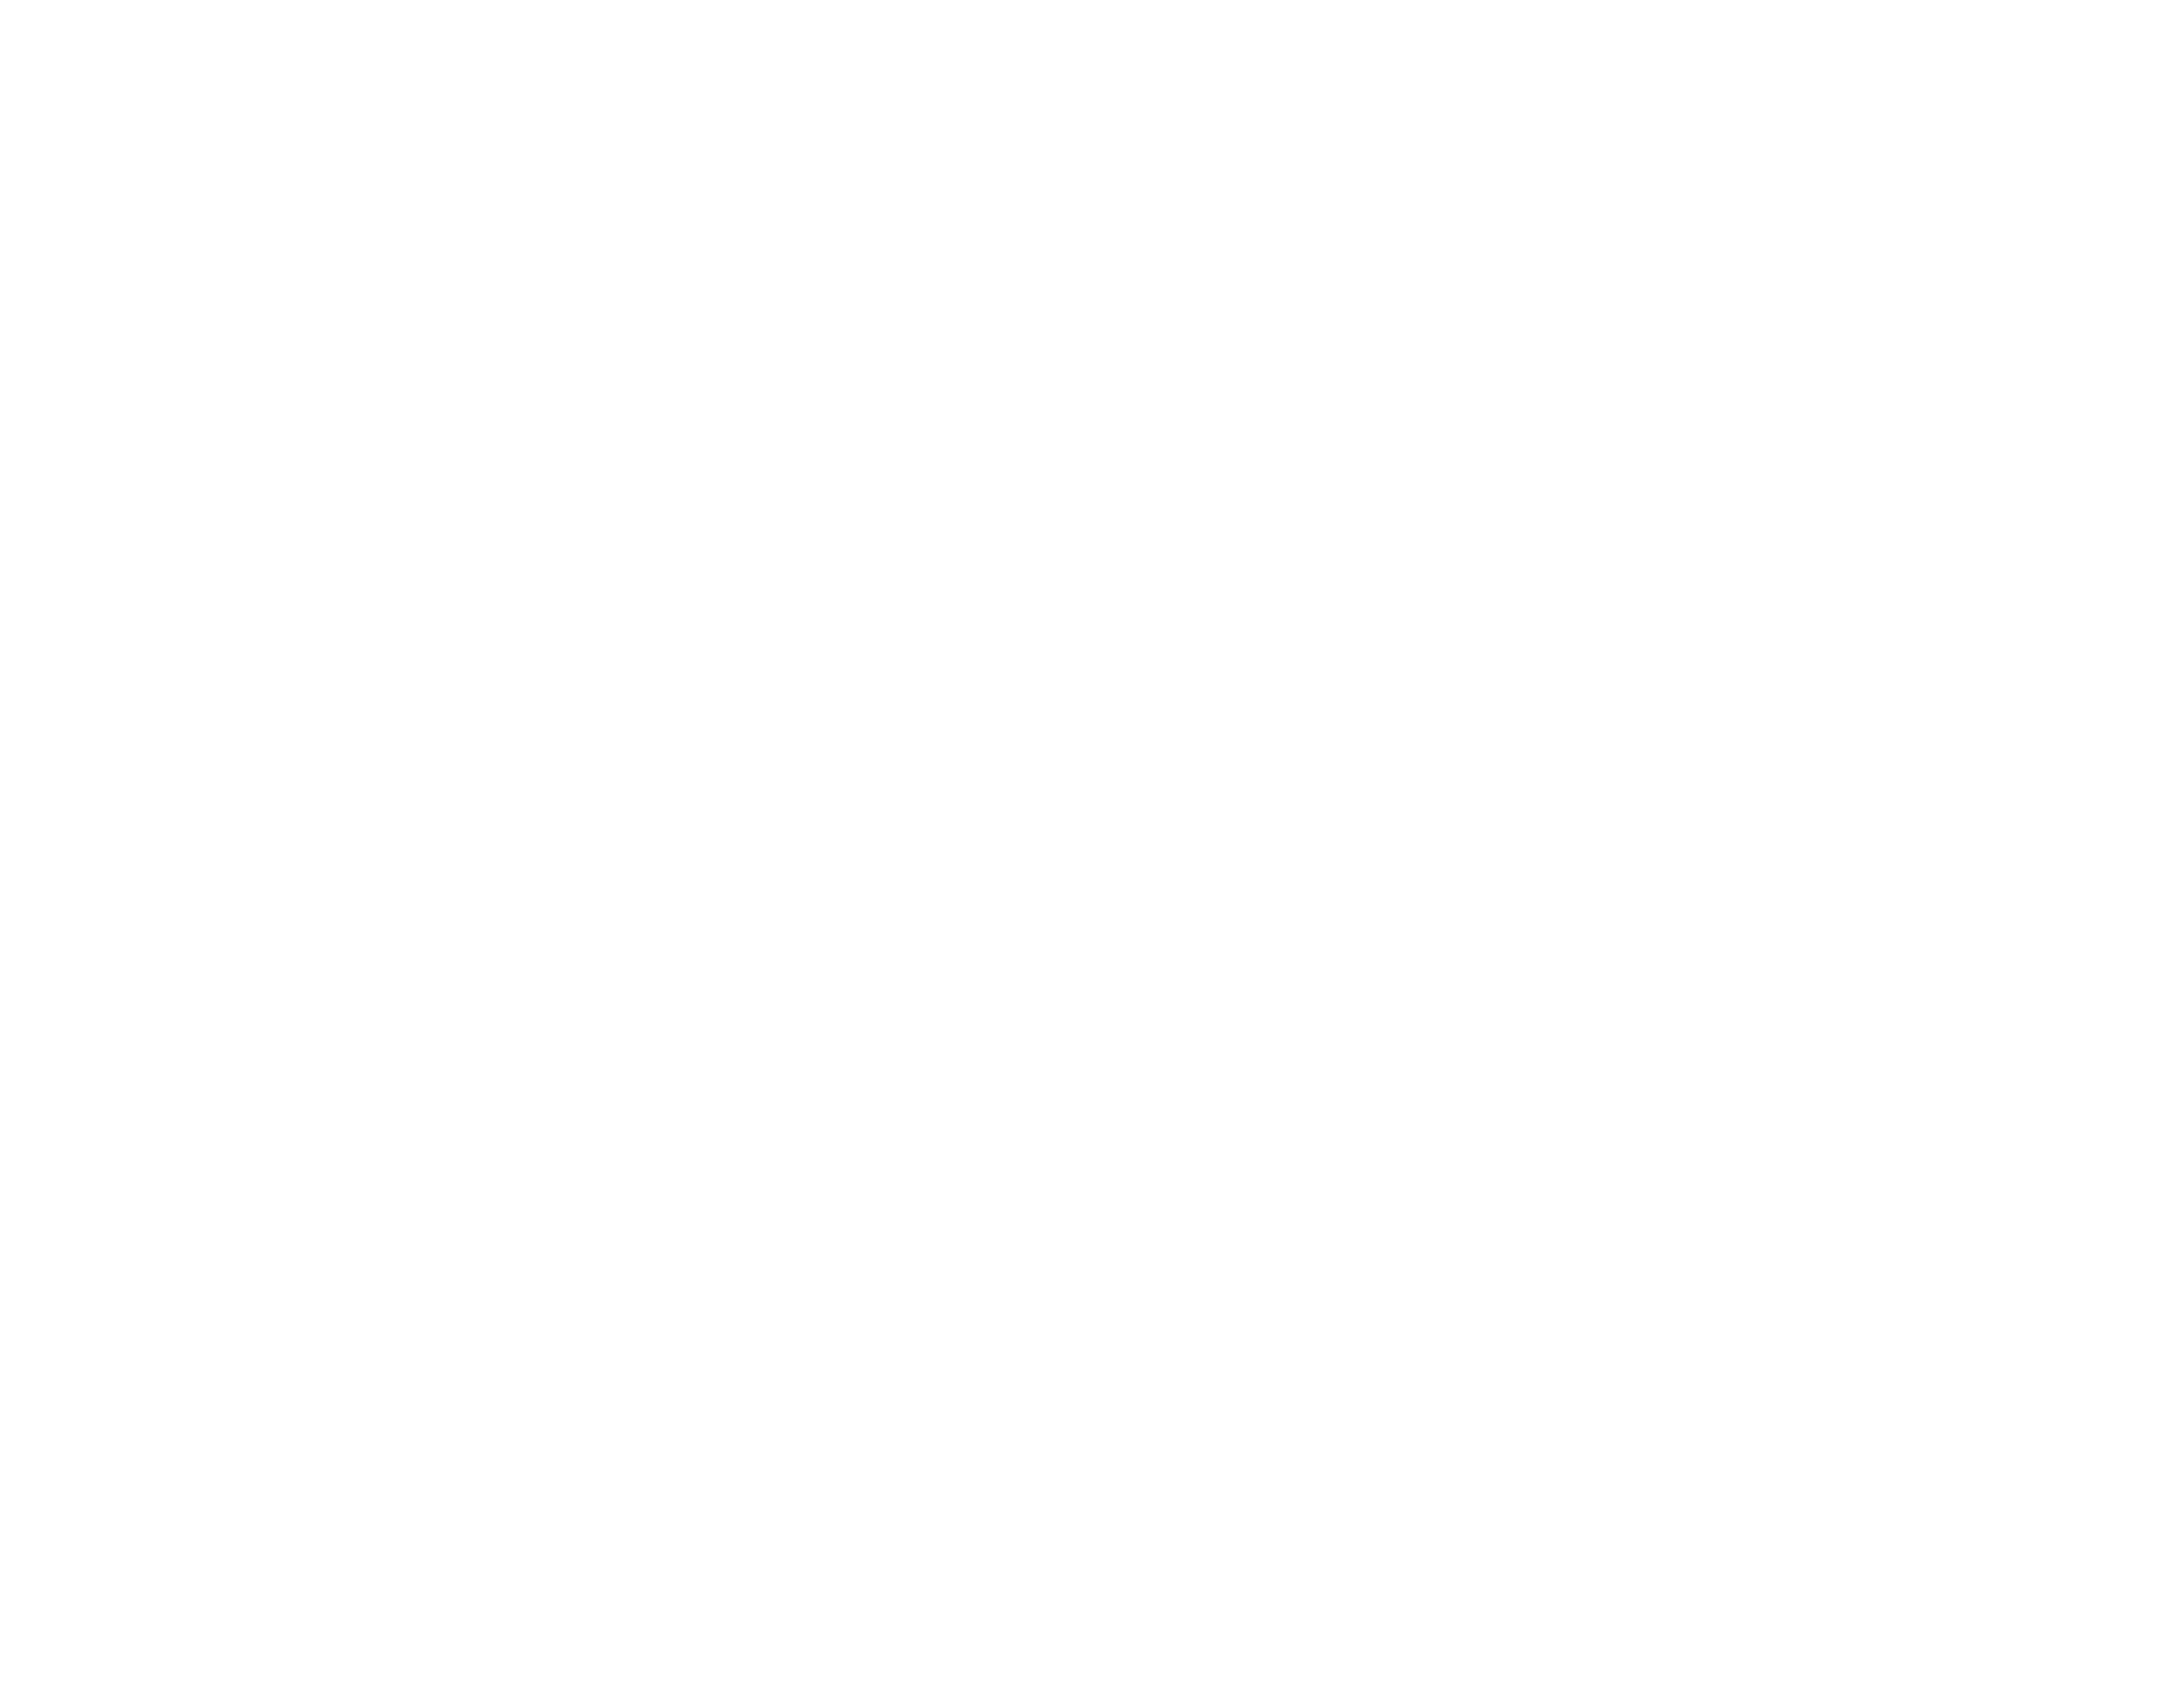 Logo We are PM - Play Malmö - @playmalmo - playmalmo.se